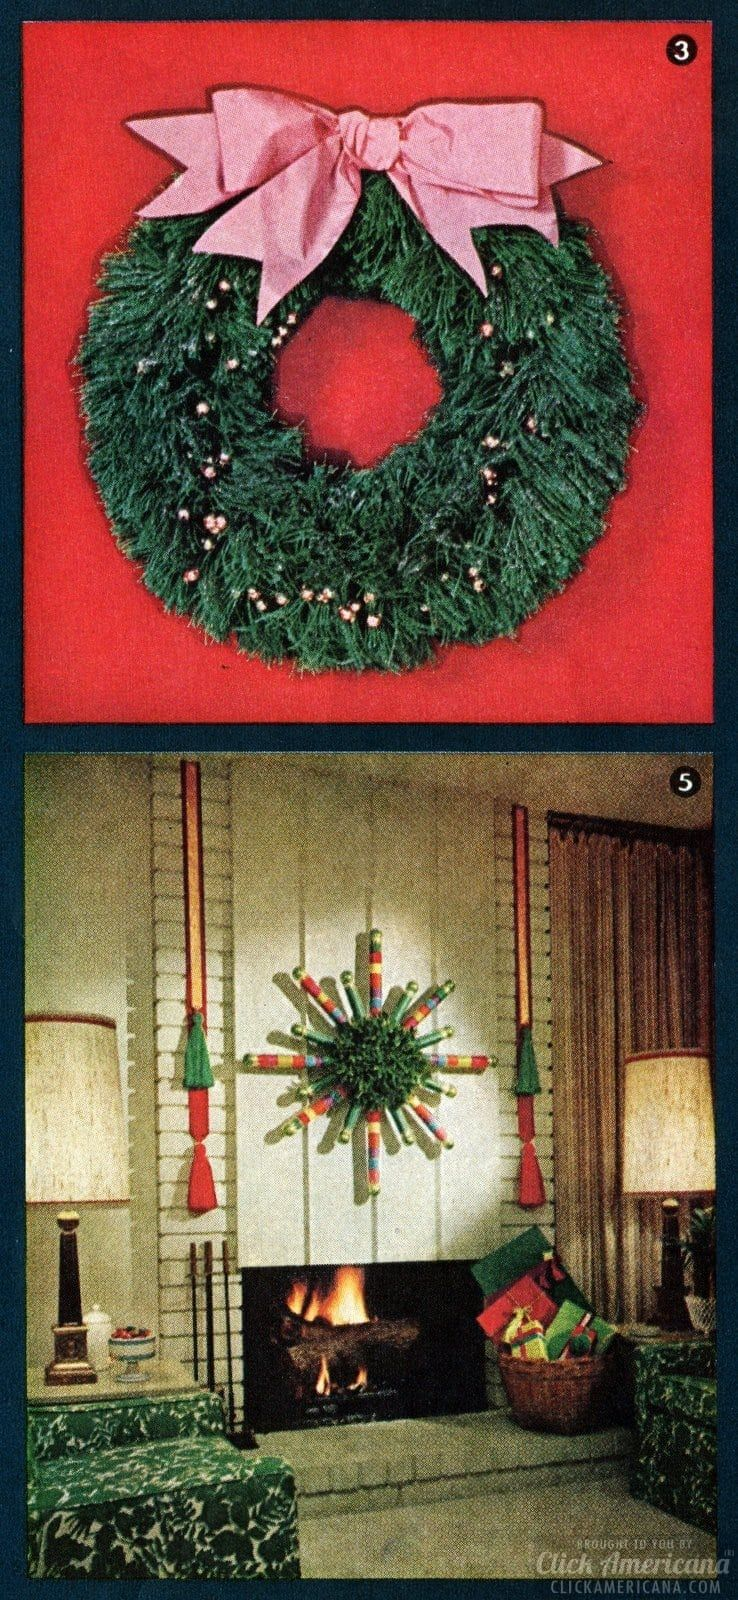 Retro Christmas Decorating Ideas From Readers Holiday Decor Traditional Christmas Decorations Fun Halloween Decor